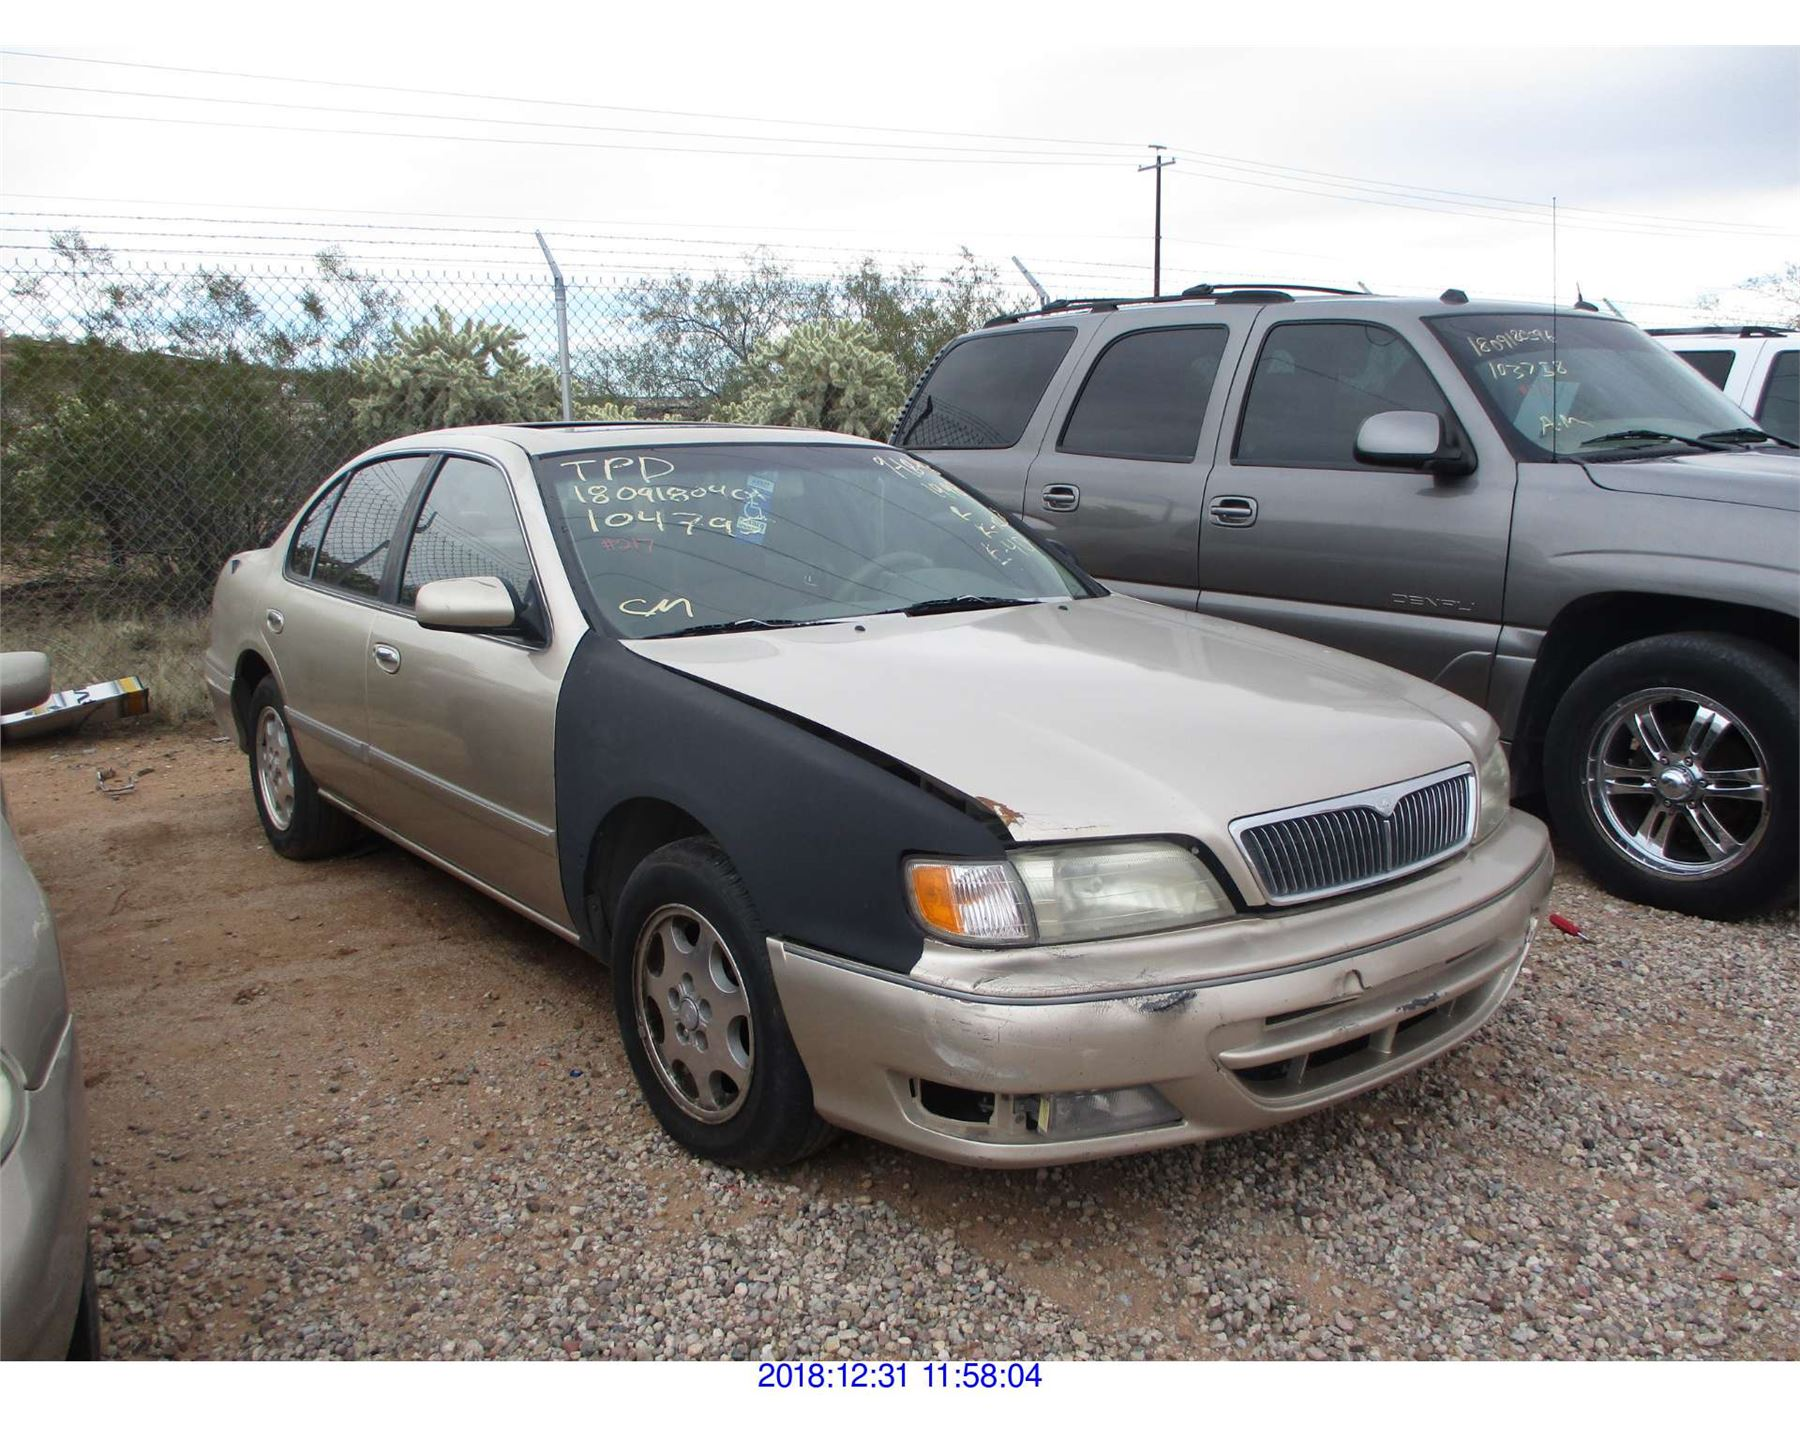 small resolution of image 1 1998 infiniti i30 restored salvage